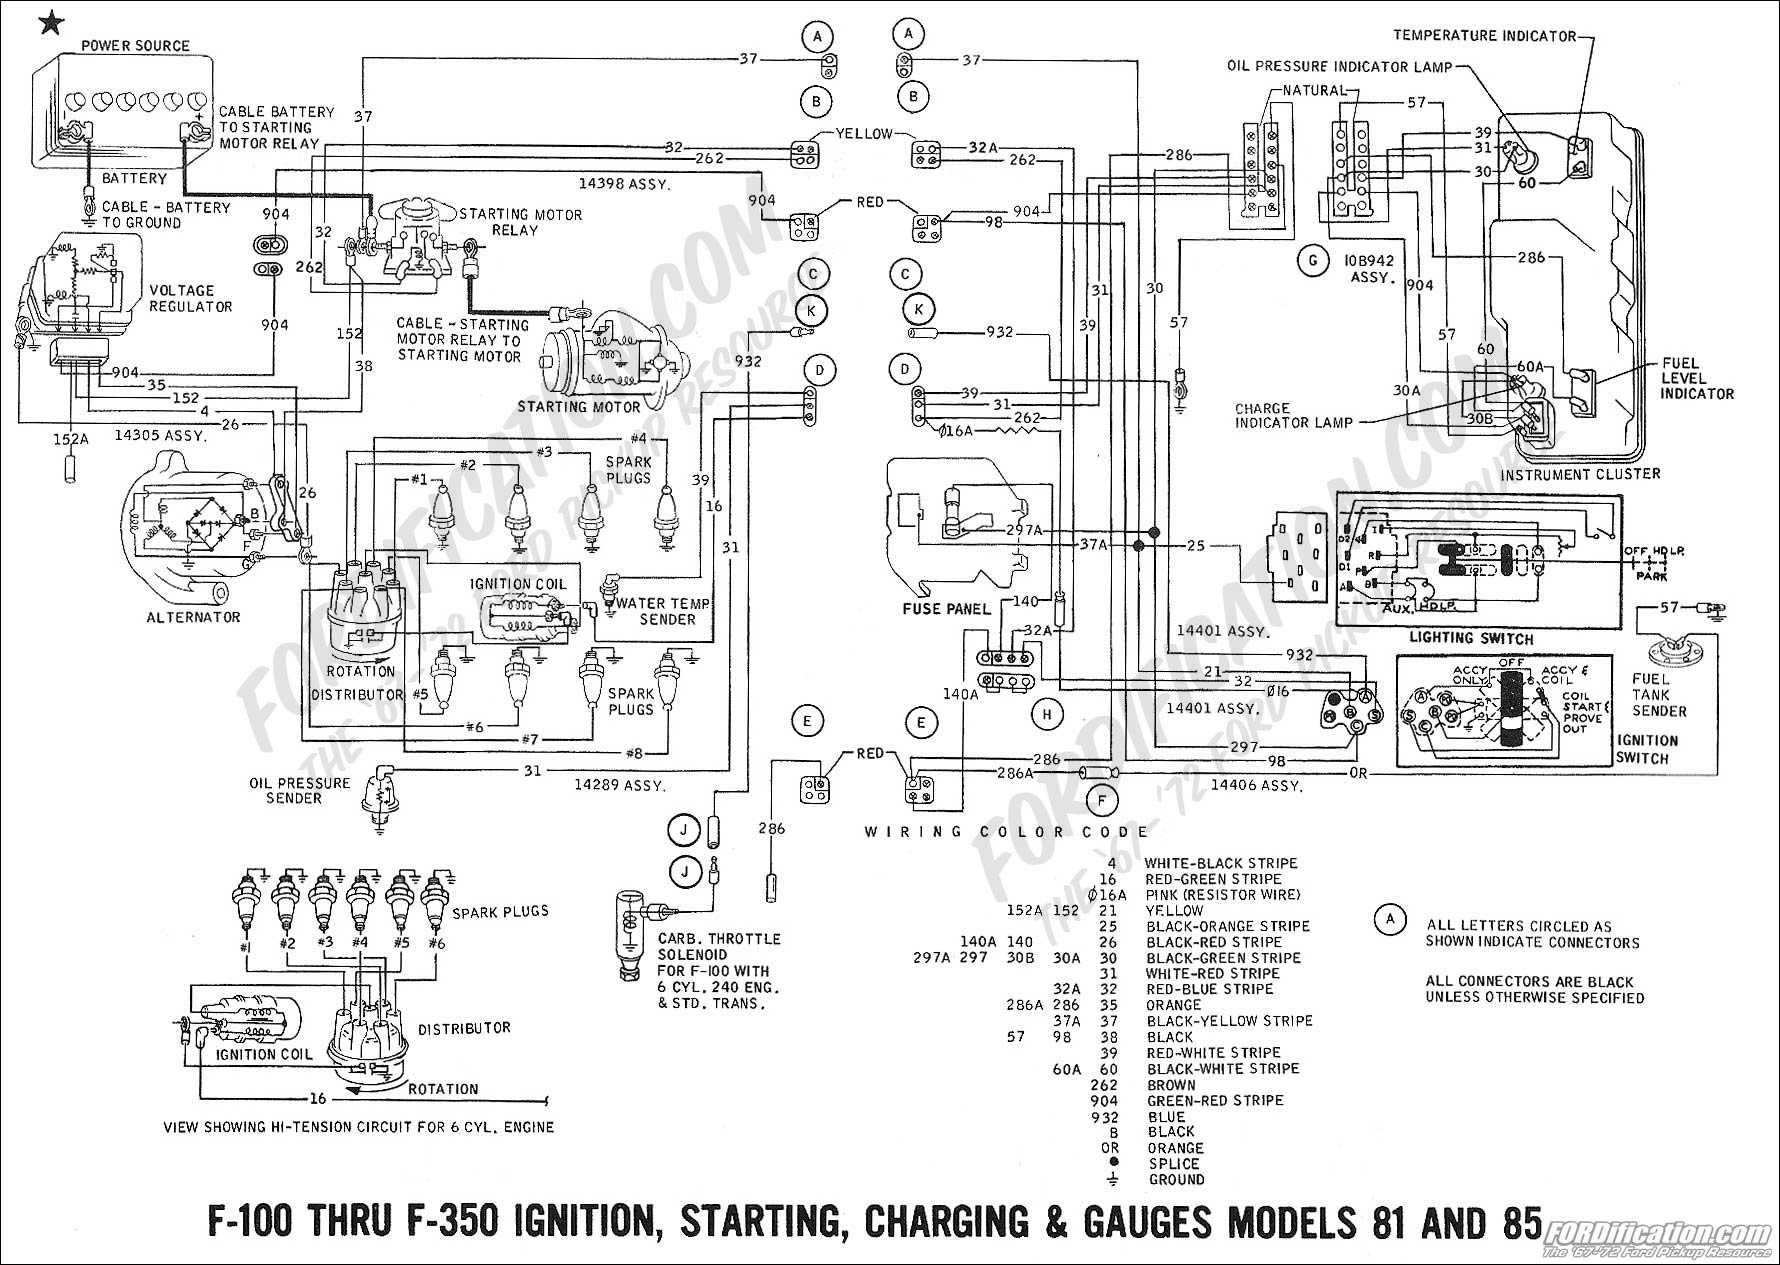 Enjoyable Coil Wiring Diagram 1990 Gmc 350 Basic Electronics Wiring Diagram Wiring Digital Resources Spoatbouhousnl